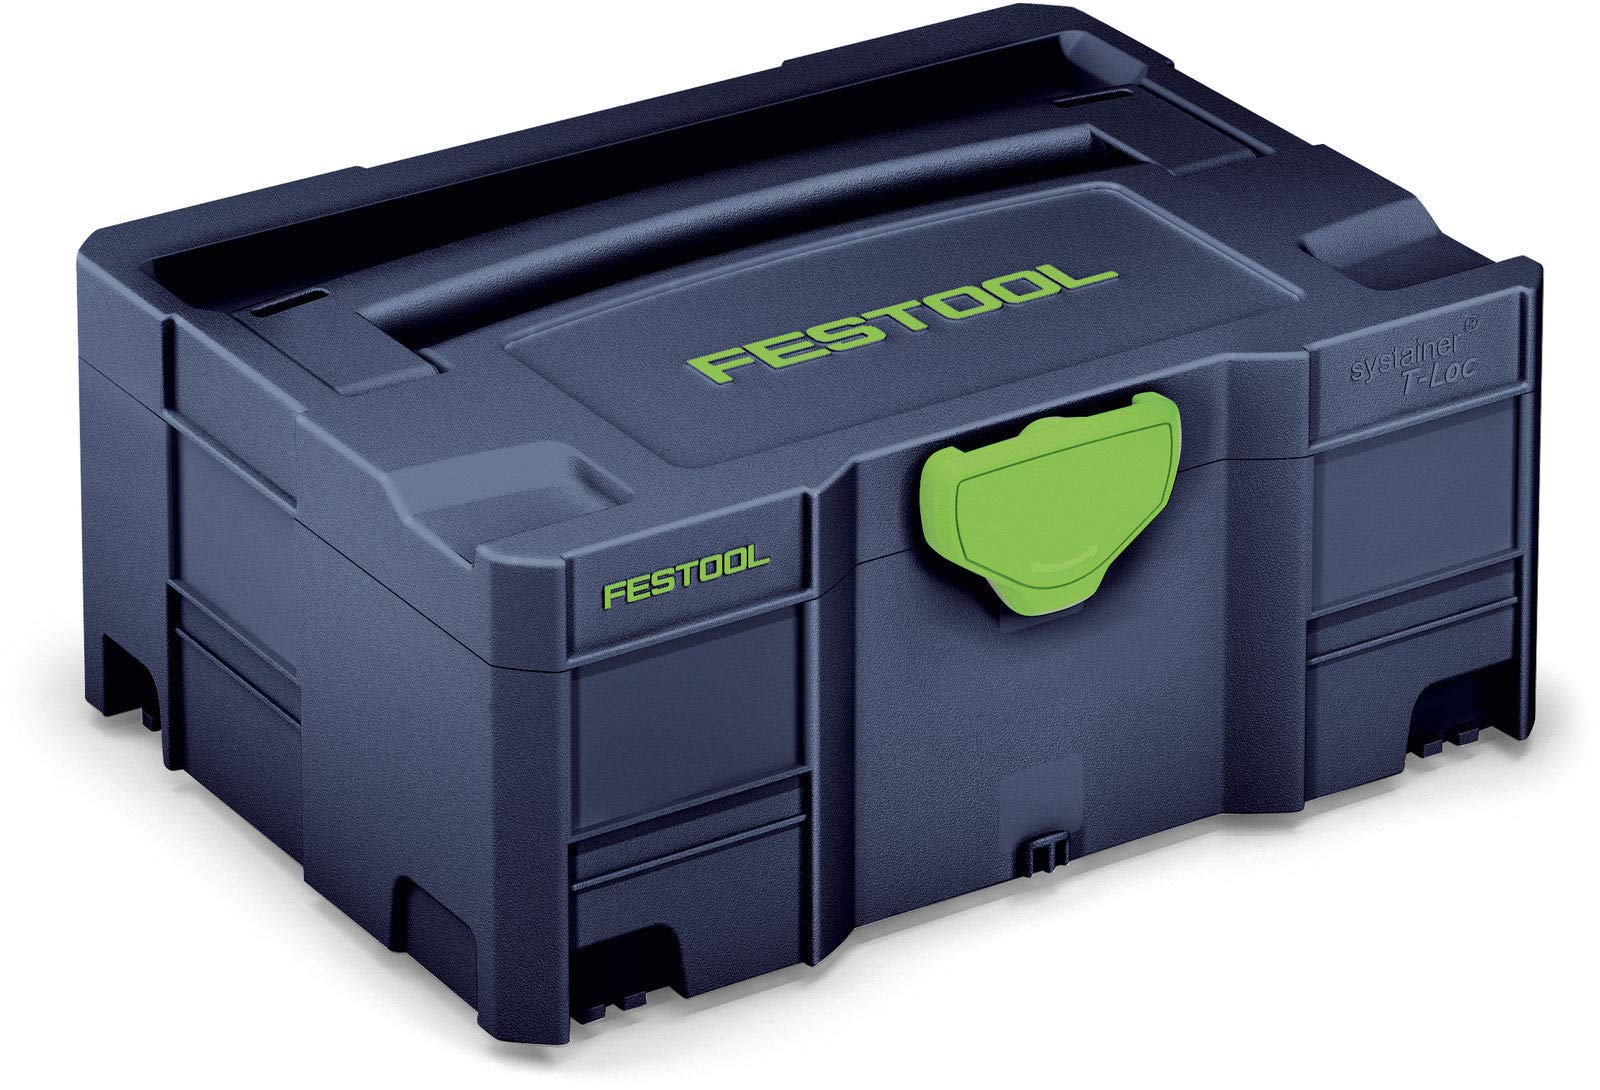 Festool 204534 Limited Edition Blue Systainer 2 by Festool (Image #1)